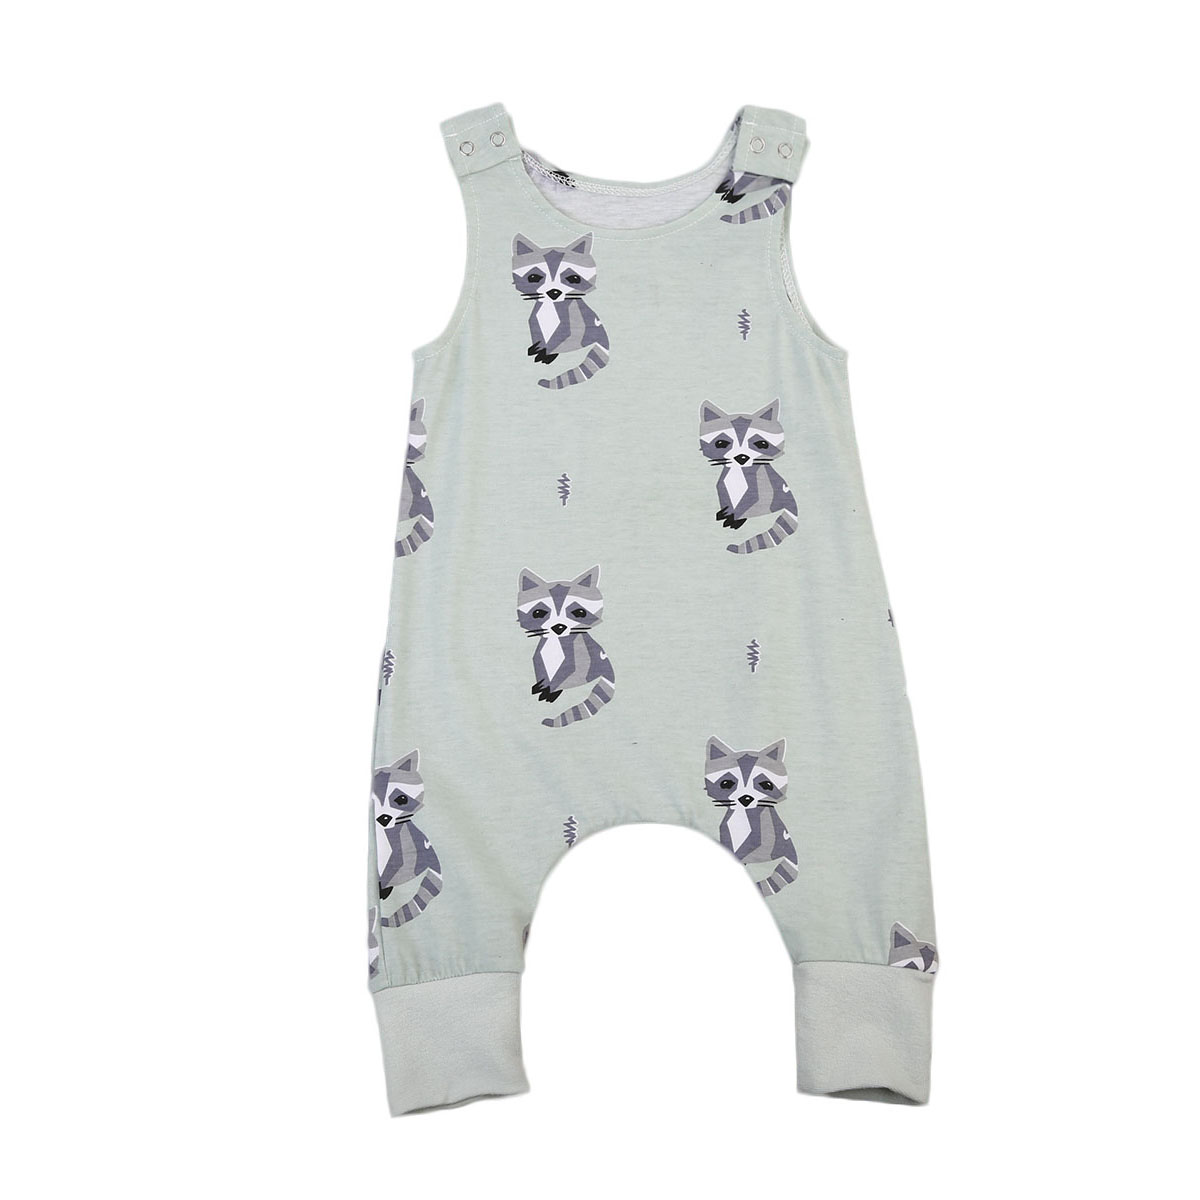 Newborn Baby Boy Girl Clothes Summer Sleeveless Cute Romper Toddler Kids Jumpsuit Outfits Cotton Clothing 0-24M newborn infant baby romper cute rabbit new born jumpsuit clothing girl boy baby bear clothes toddler romper costumes